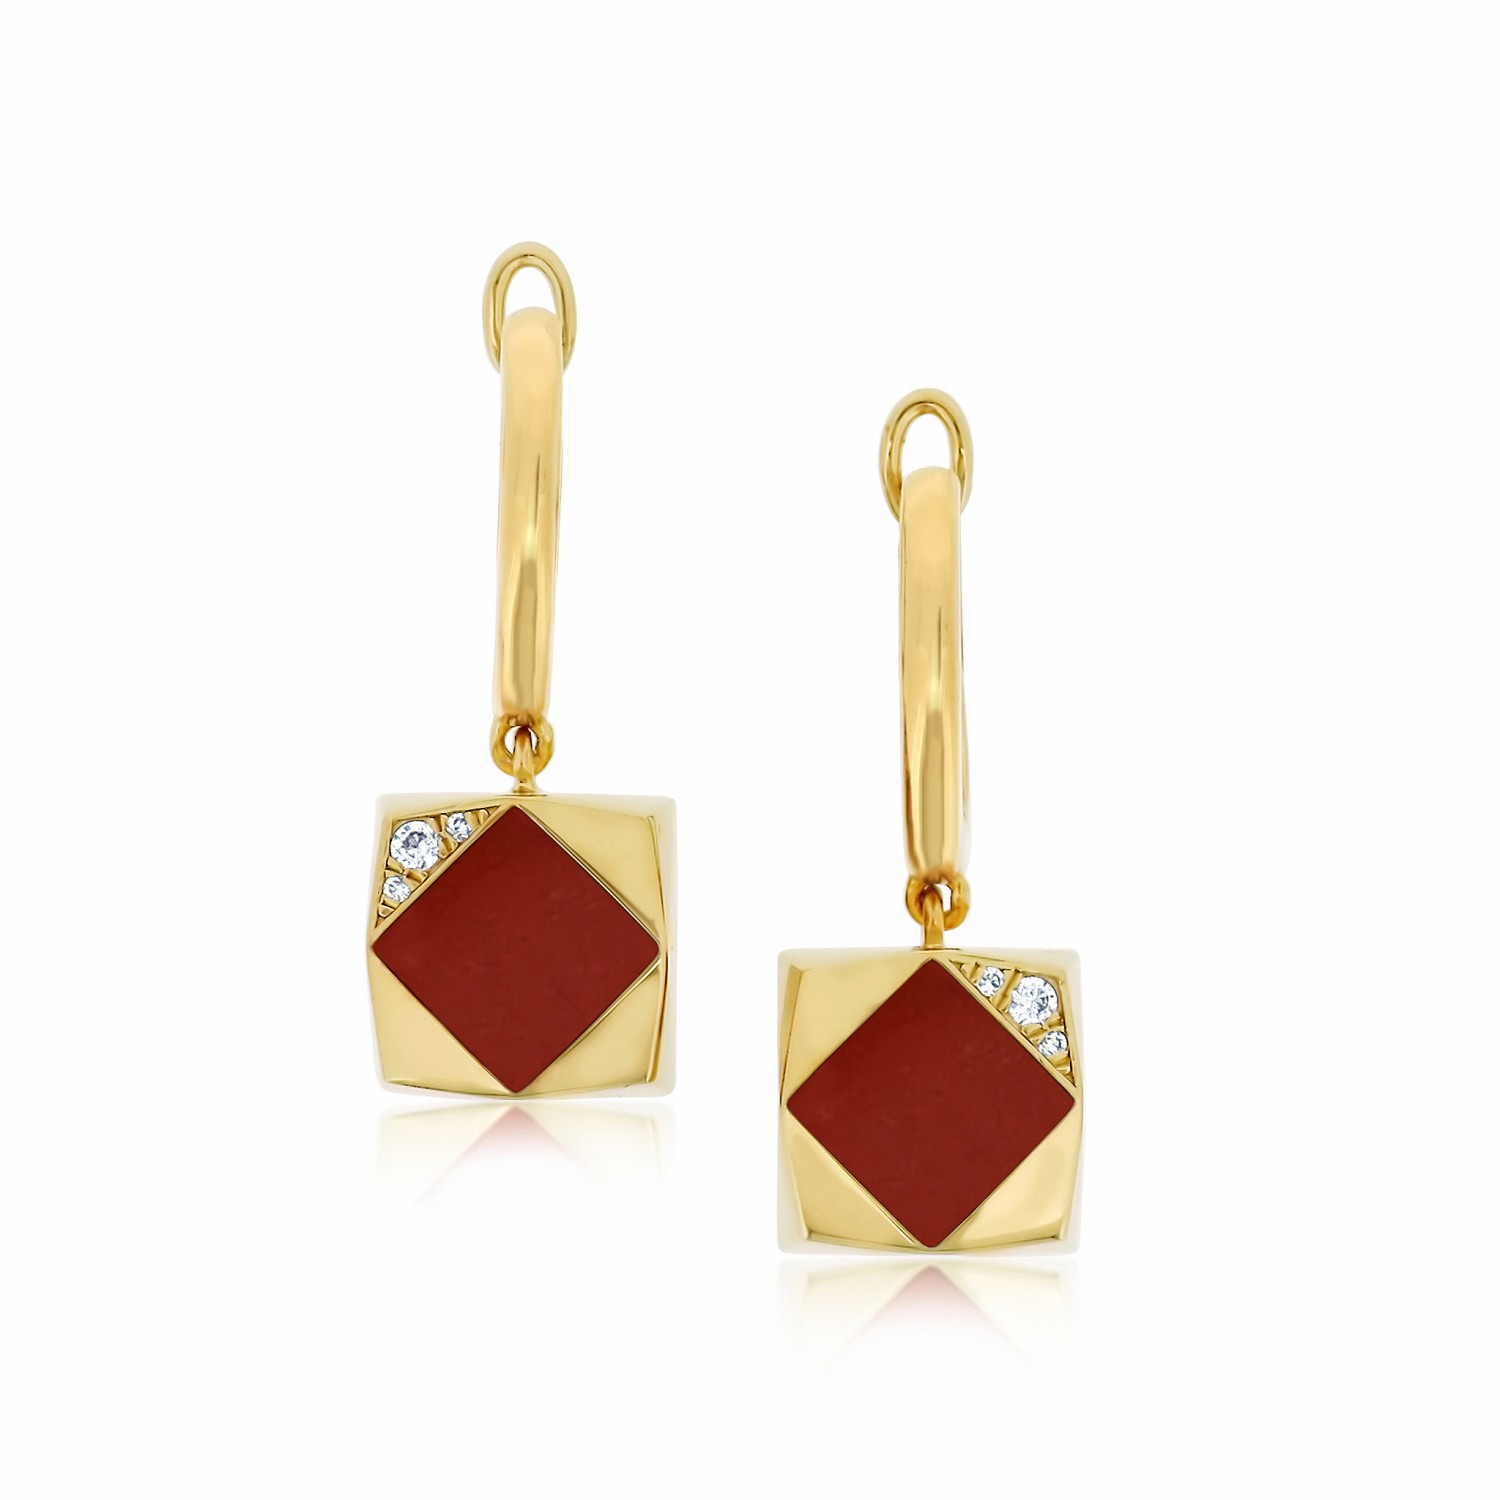 Ornate Square Rhombus Red Agate Earrings